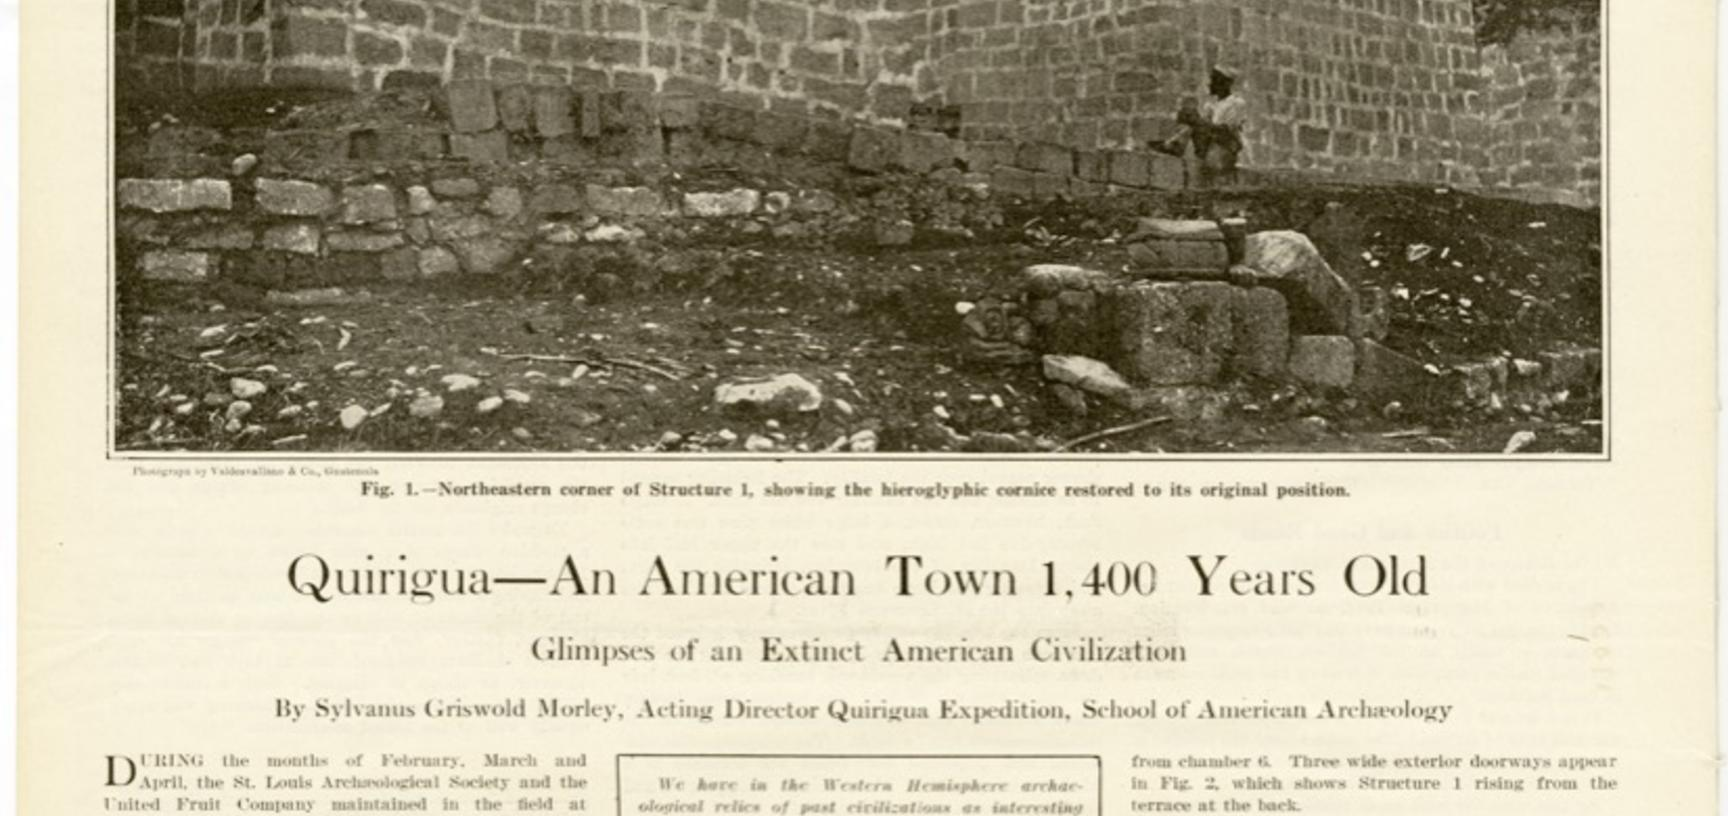 An article published in Scientific American in August 1912, titled 'Quirigua – An American Town 1,400 Years Old: Glimpses of an Extinct American Civilization', written by Sylvanus G. Morley who led the first major excavation of the Quirigua site to follow